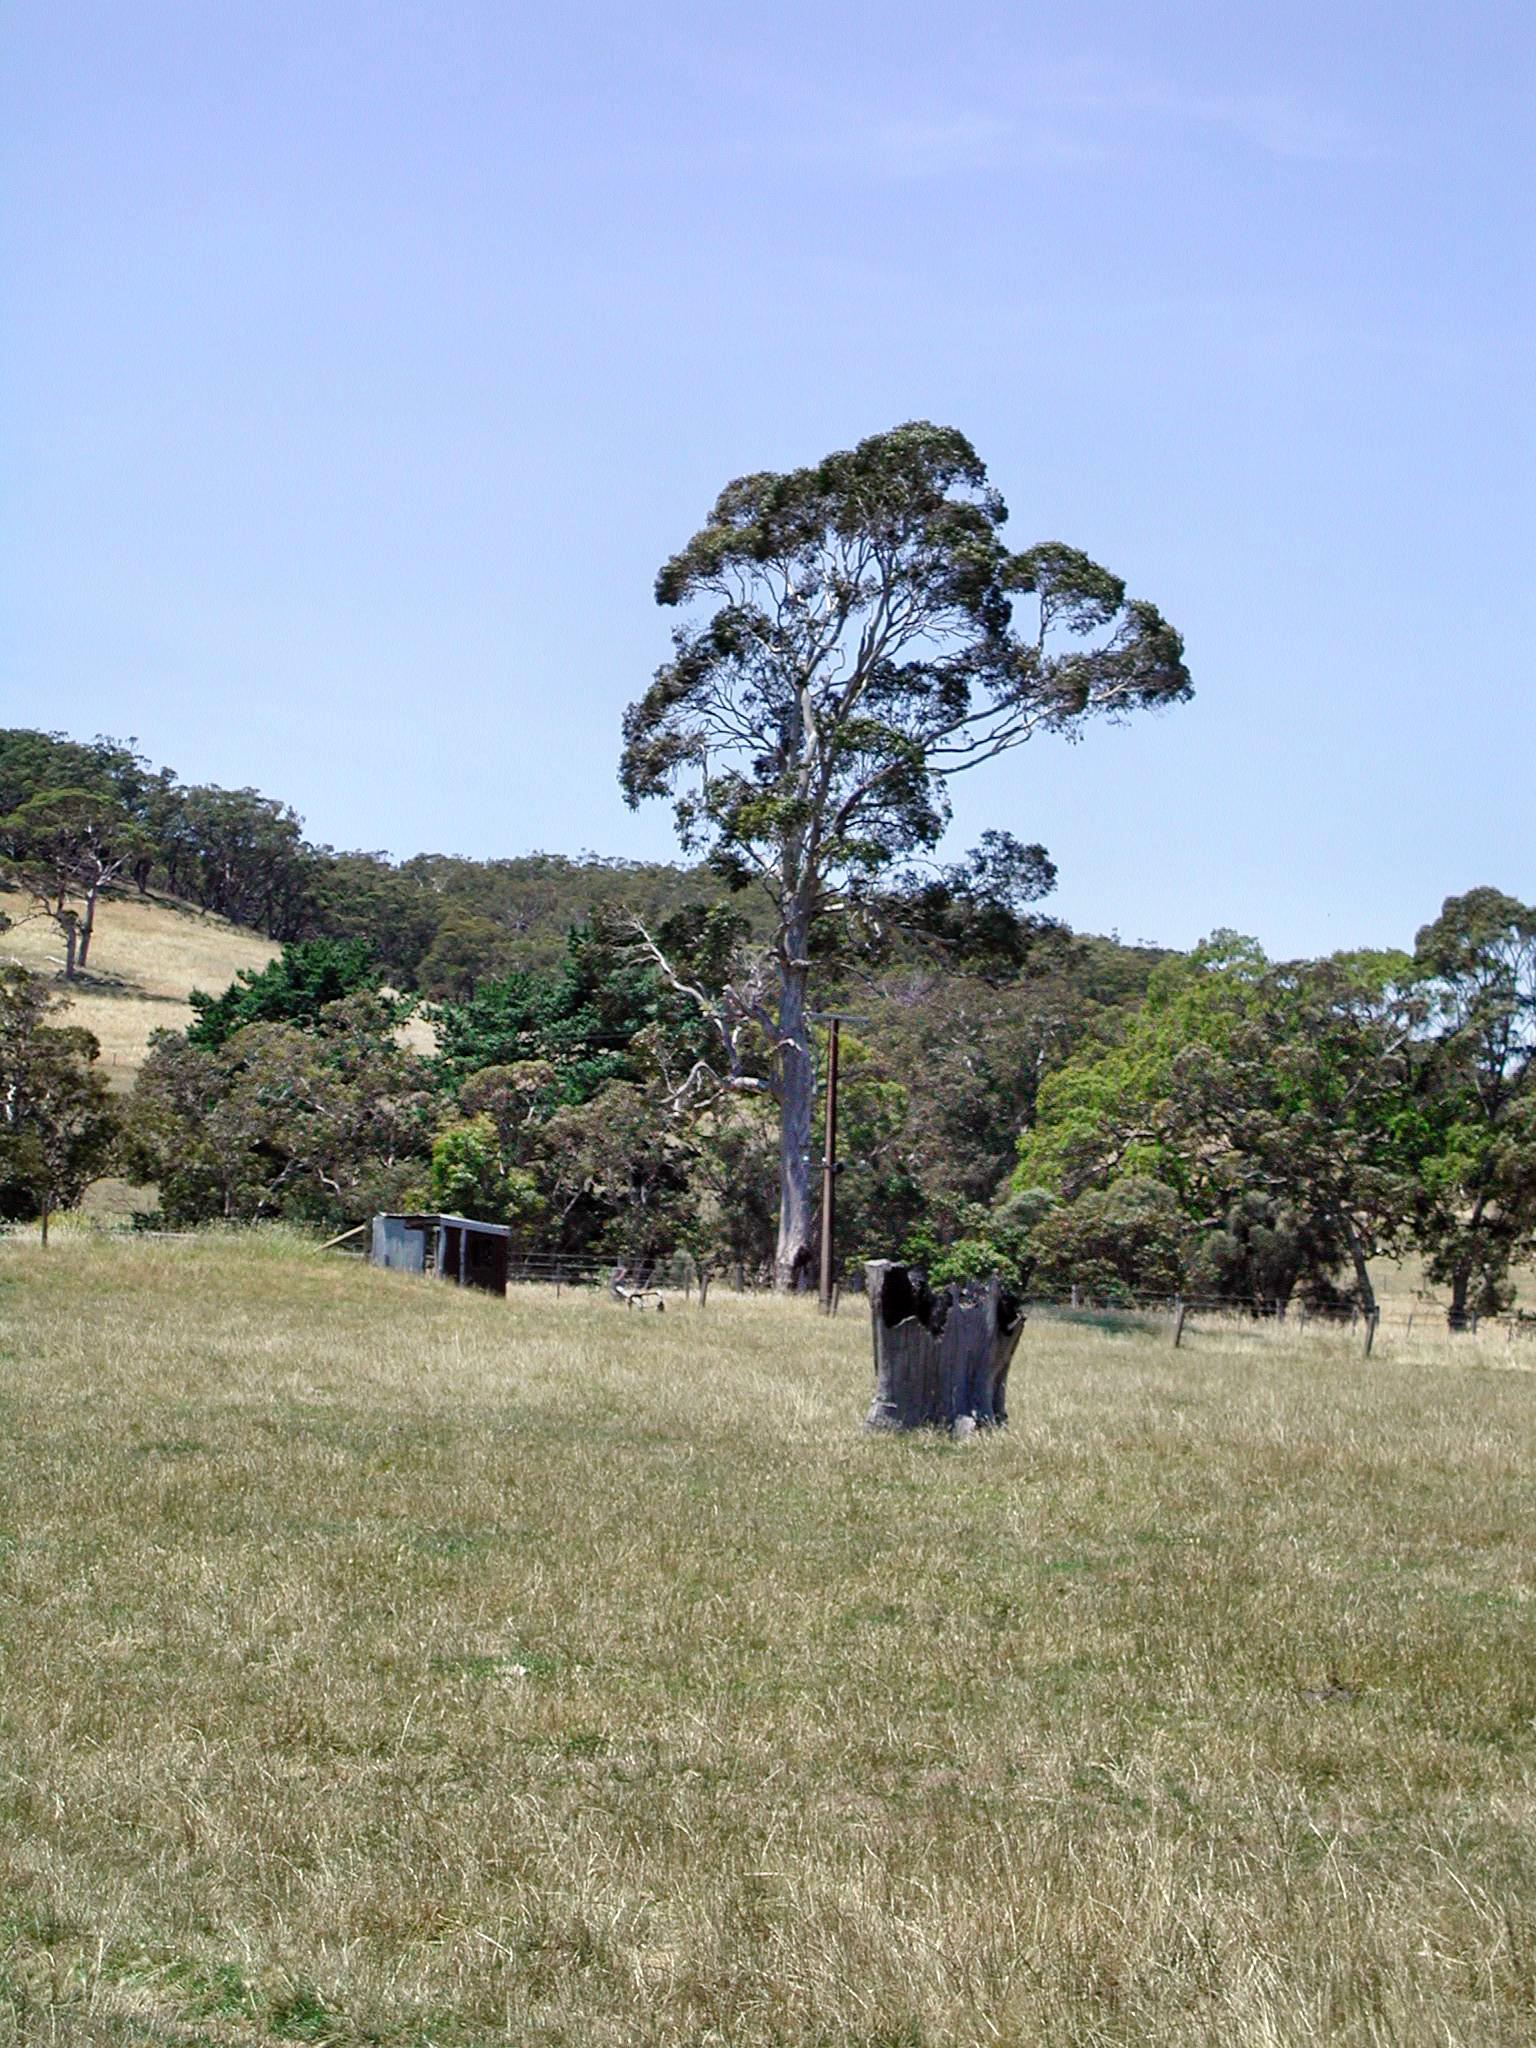 This should be black-stump.jpeg.  Is it missing?